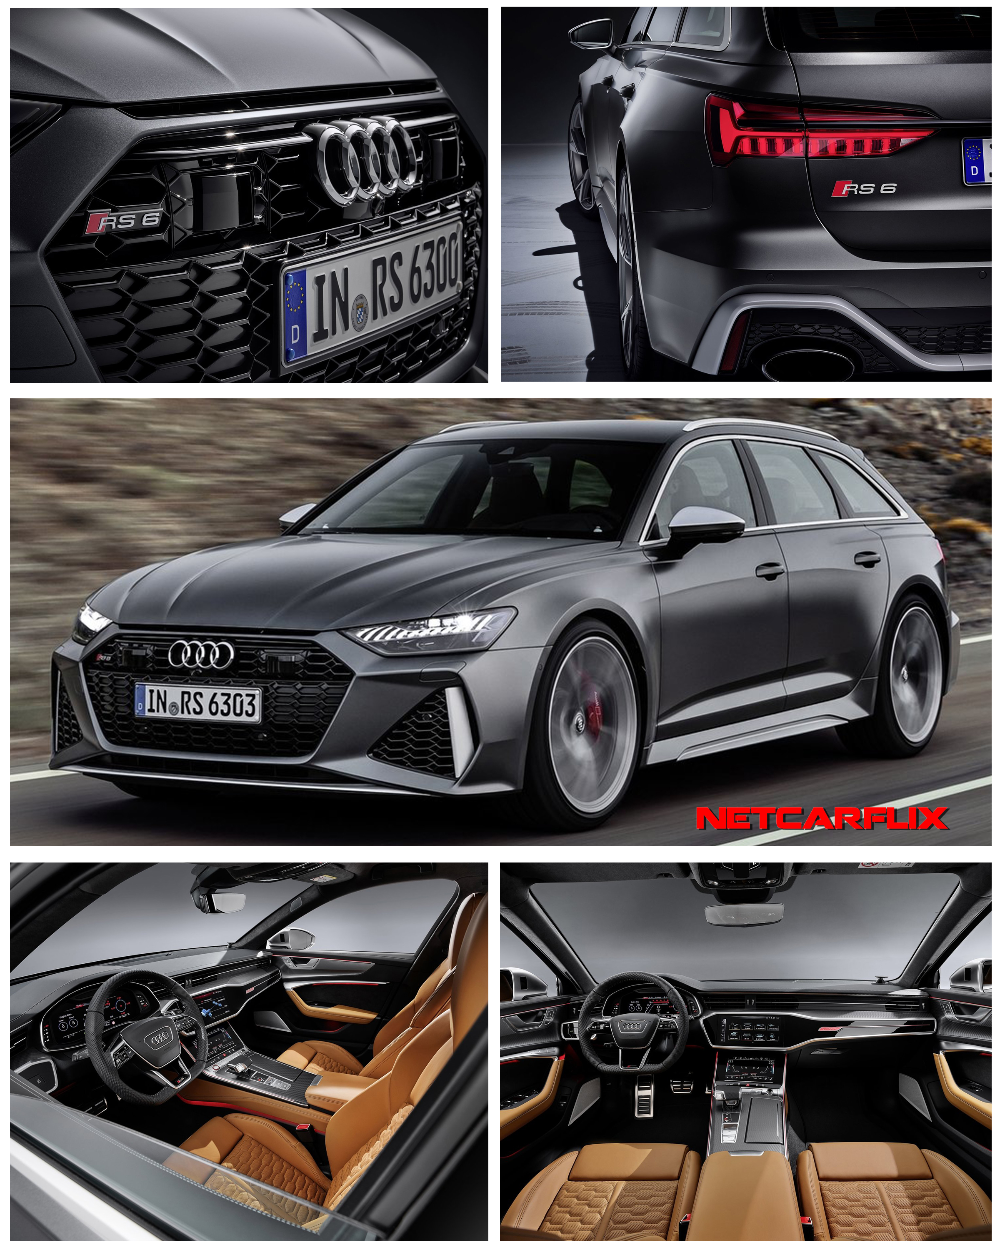 2020 Audi Rs6 Avant Hq Pictures Specs Information And Videos Dailyrevs Audi Rs6 Audi Audi Rs